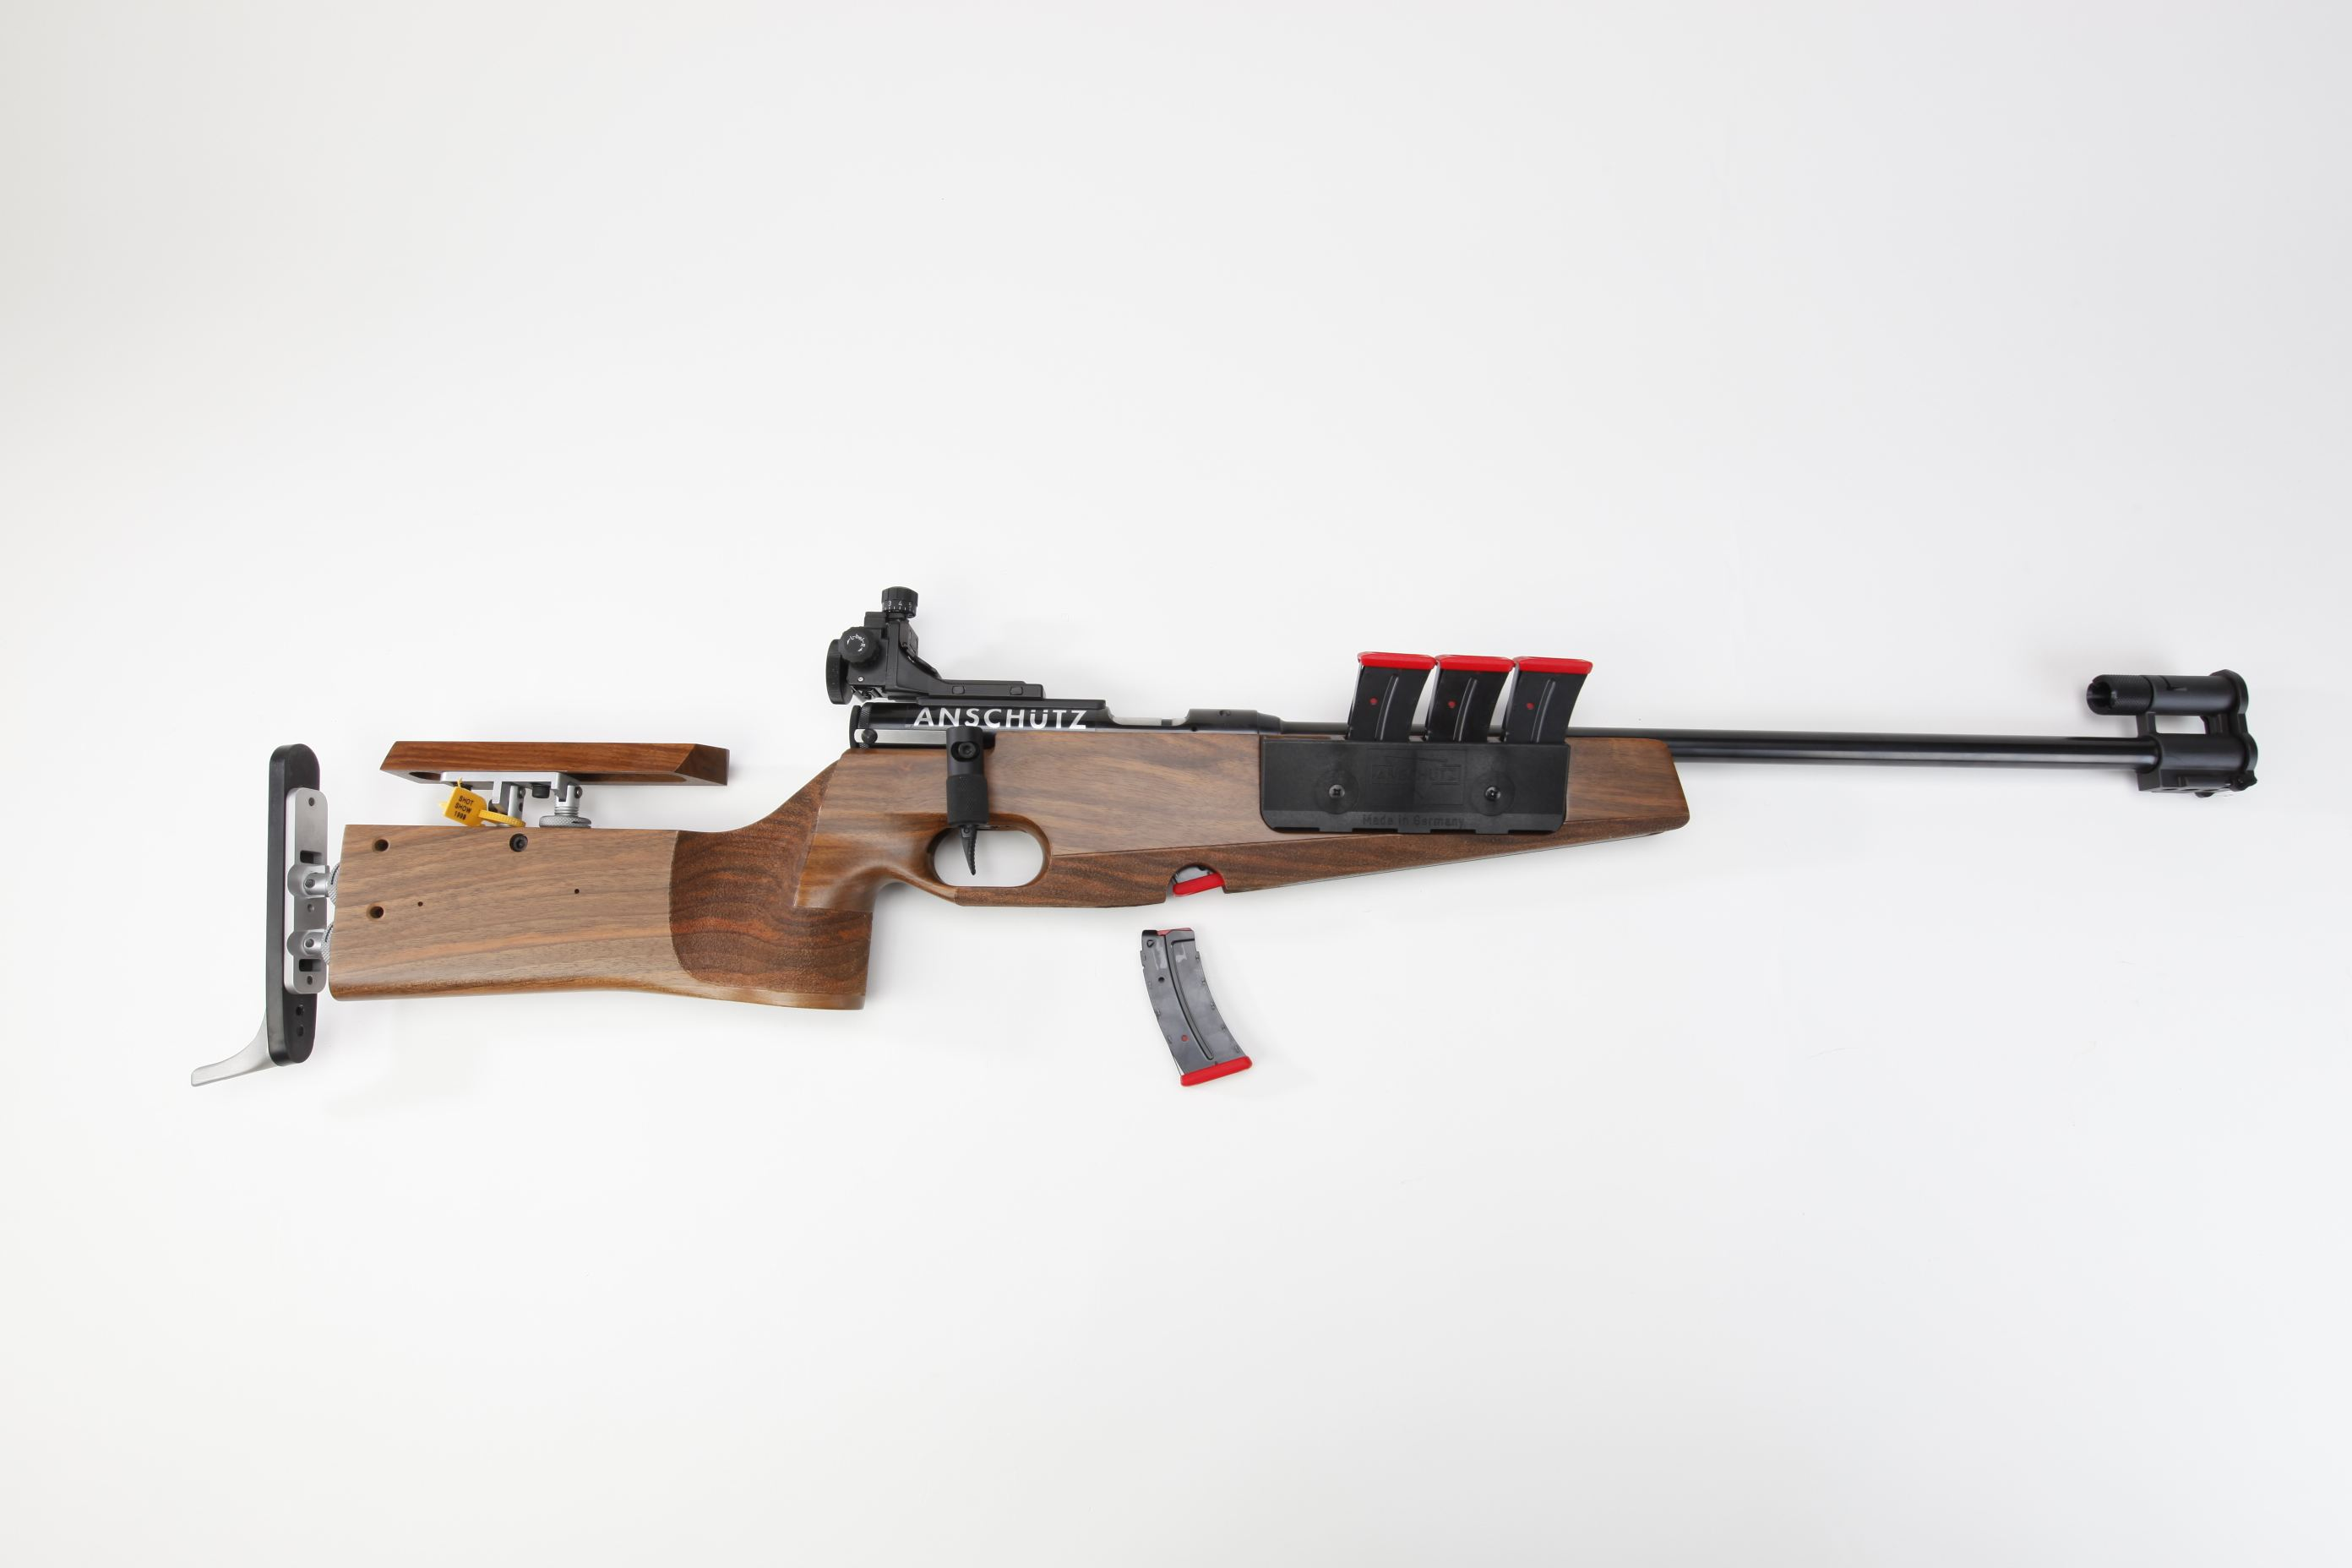 Anschutz Model 1827 Fortner Bolt Action Biathlon Rifle